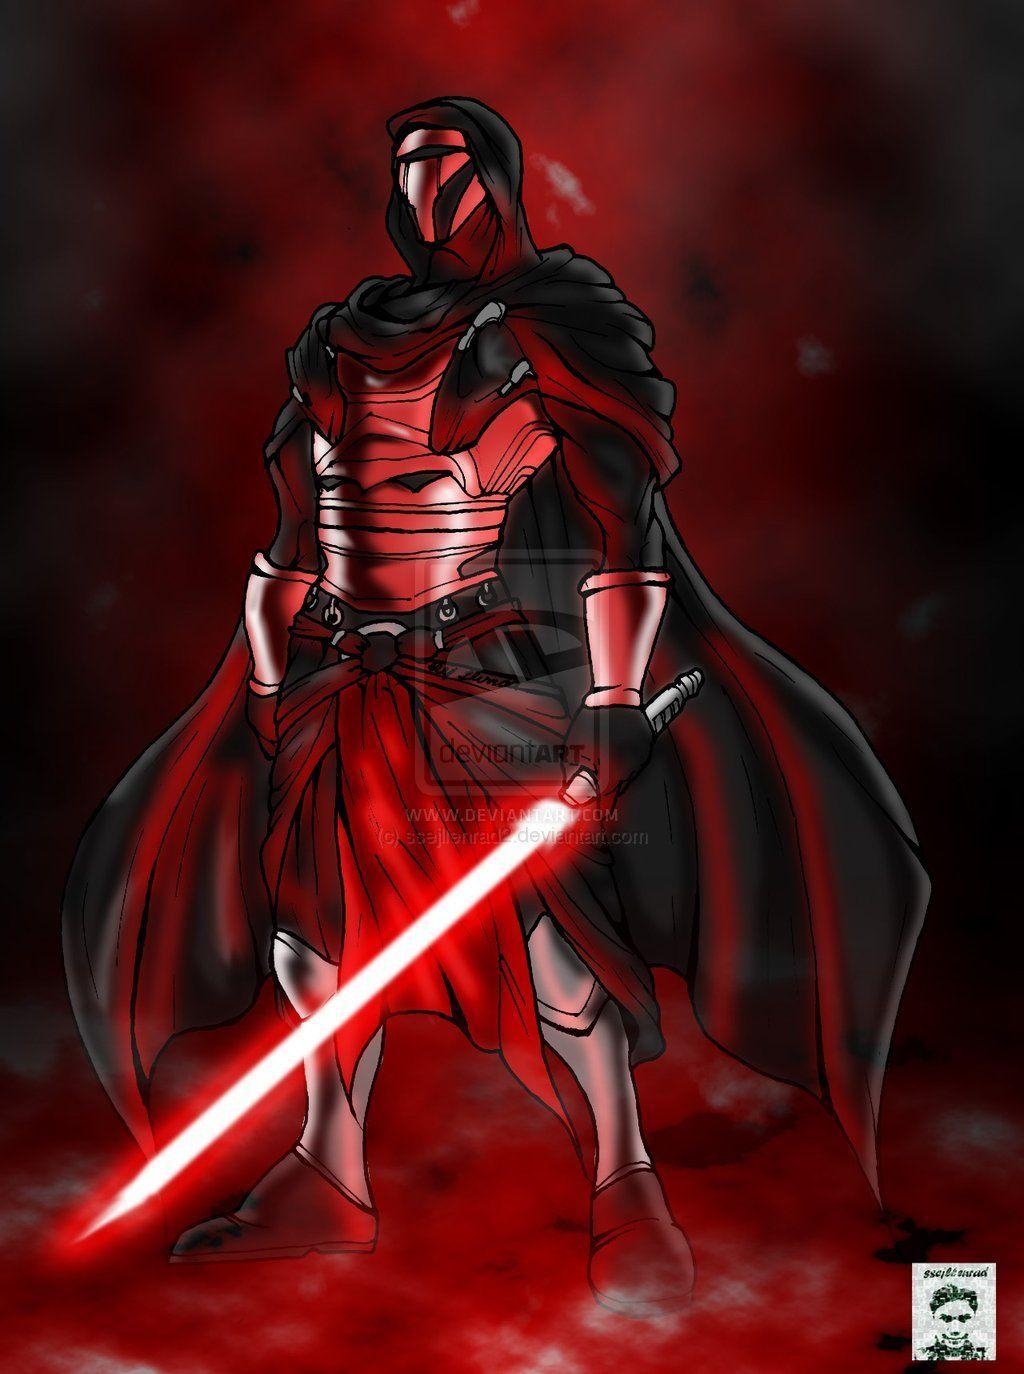 Darth Revan Wallpaper Darth Revan Wallpapers Wallpaper Cave